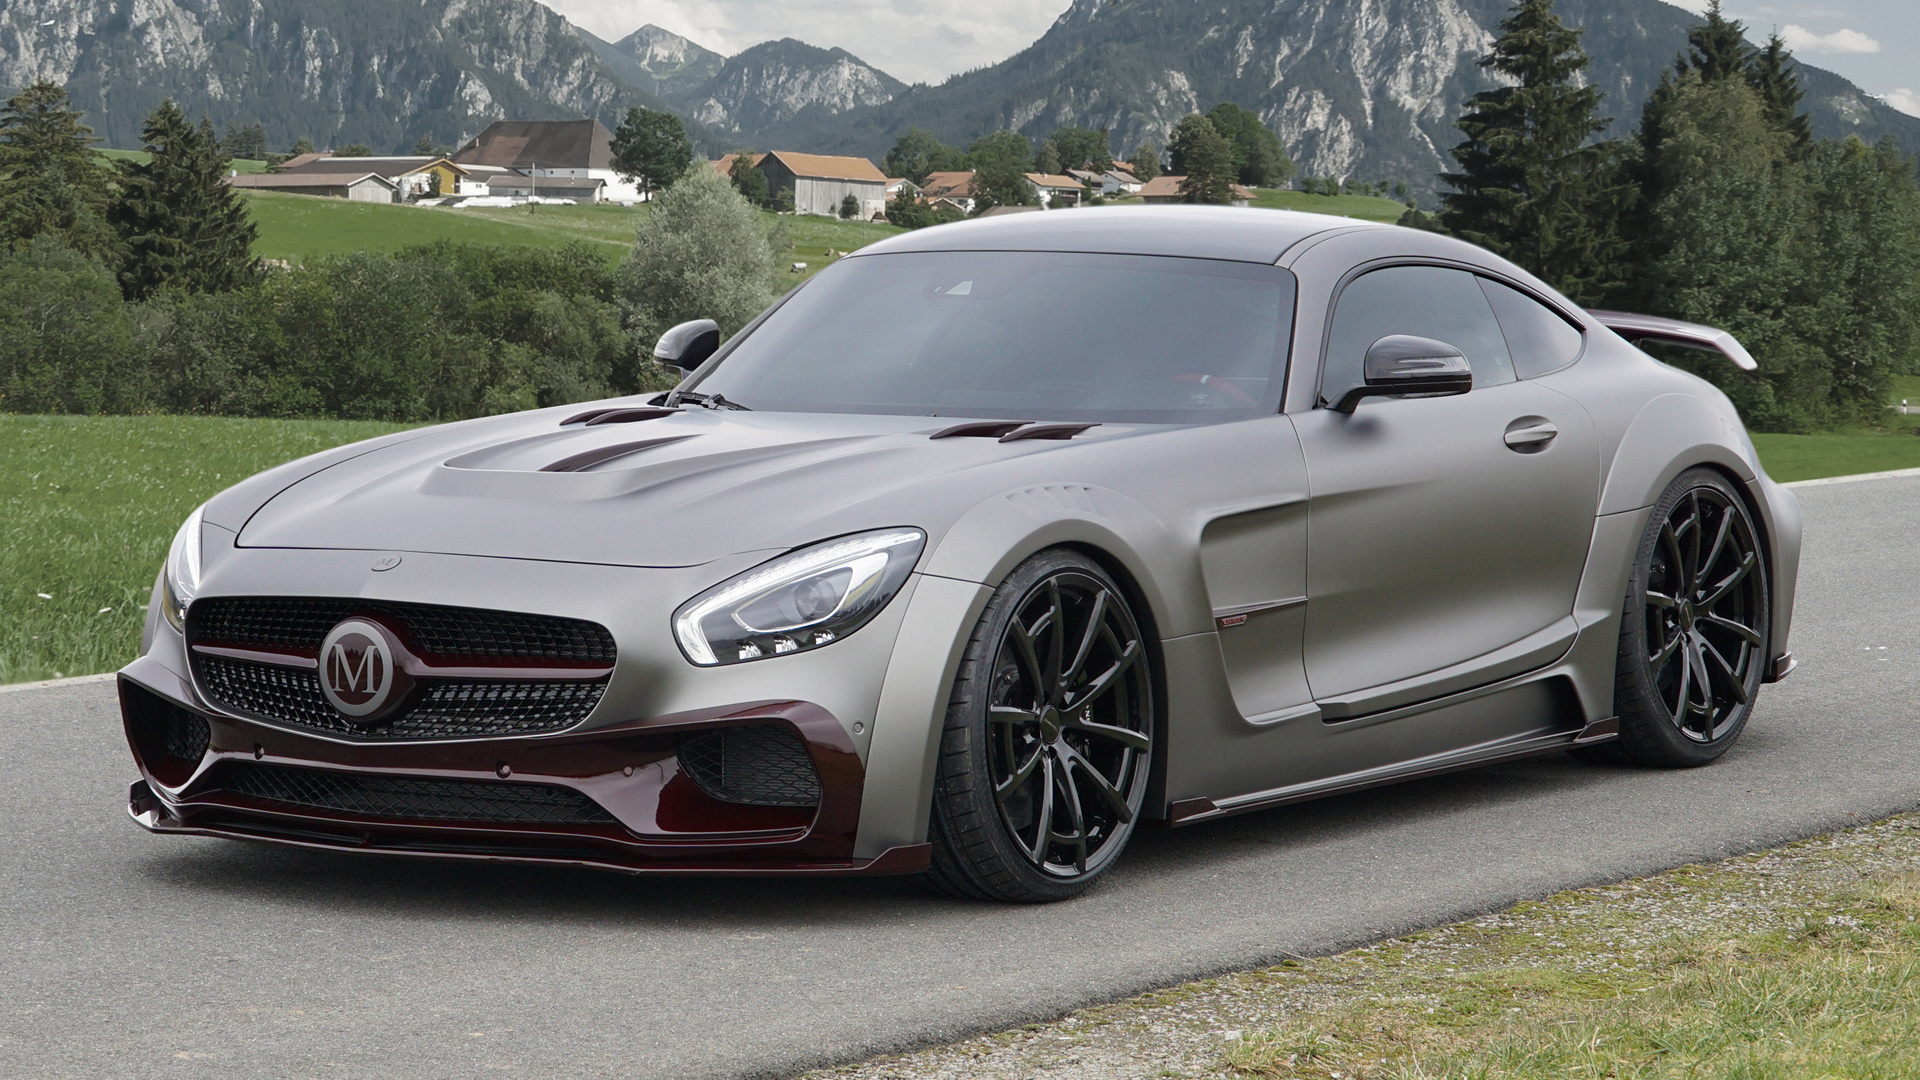 mercedes amg gt s by mansory 2016 wallpapers and hd. Black Bedroom Furniture Sets. Home Design Ideas